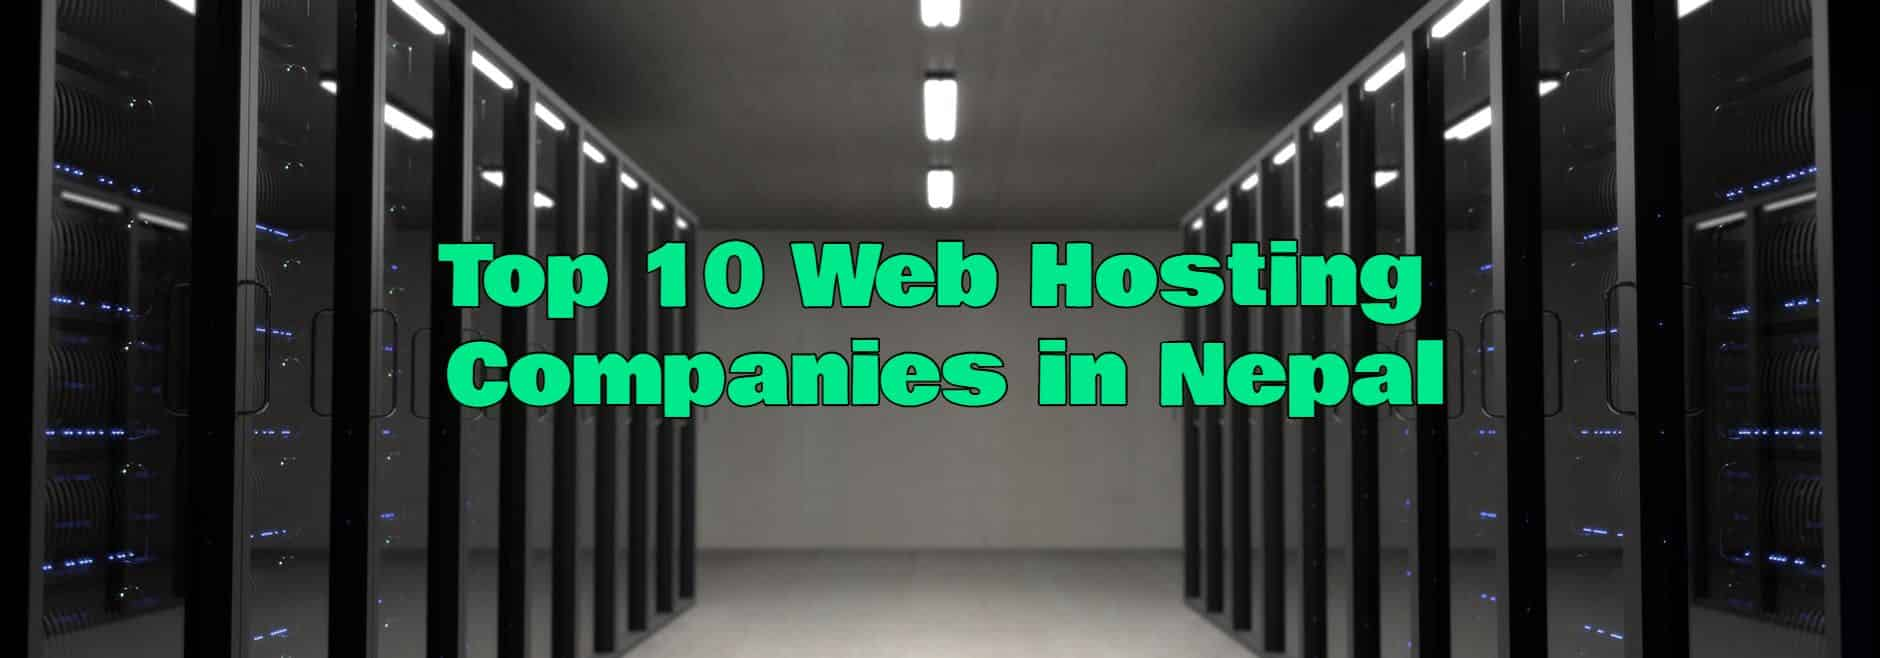 Top 10 Web Hosting Companies in Nepal | Cheapest Web Hosting in Nepal